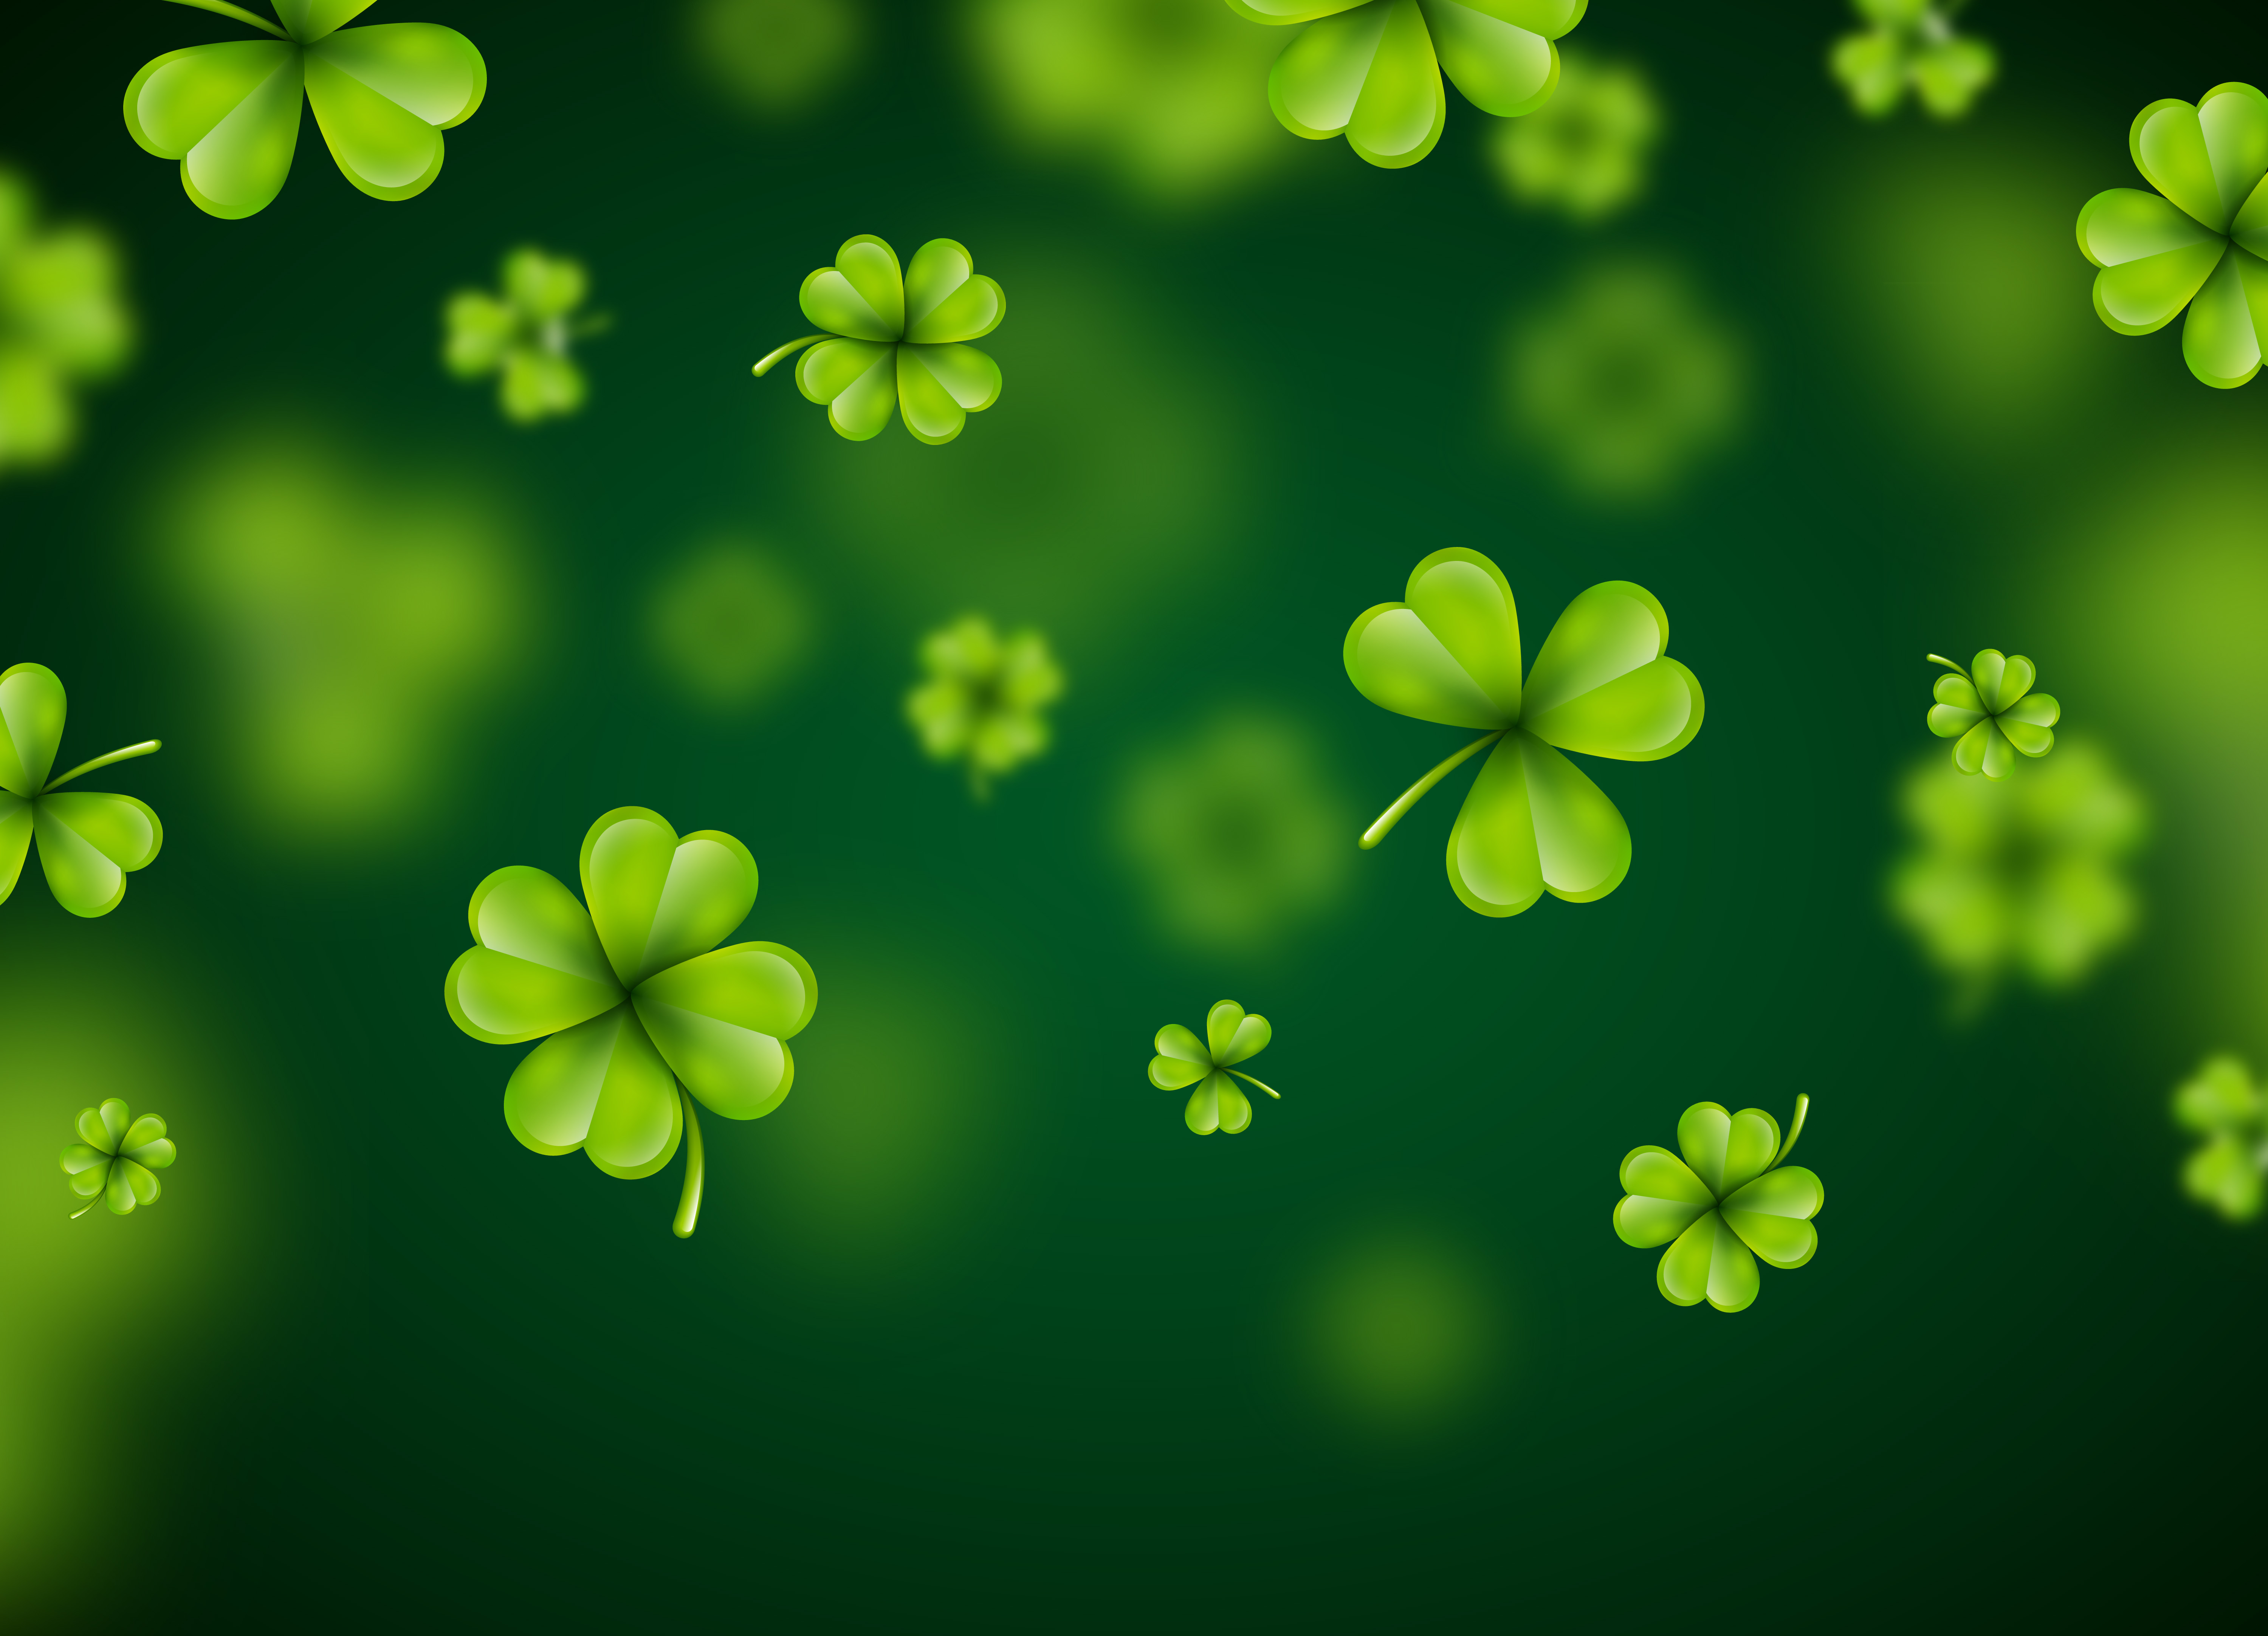 St. Patrick's Day Background Design - Download Free ...